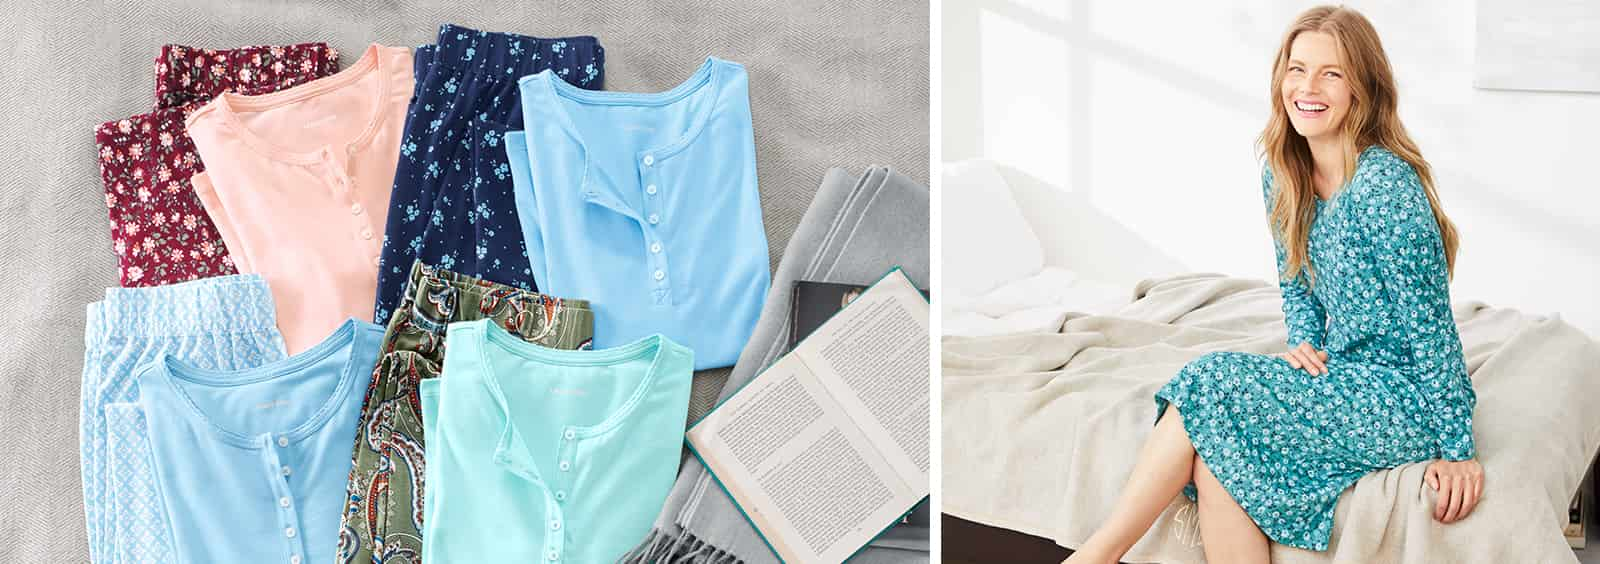 The History of Pajamas: Meaning, Origin, and Interesting Facts